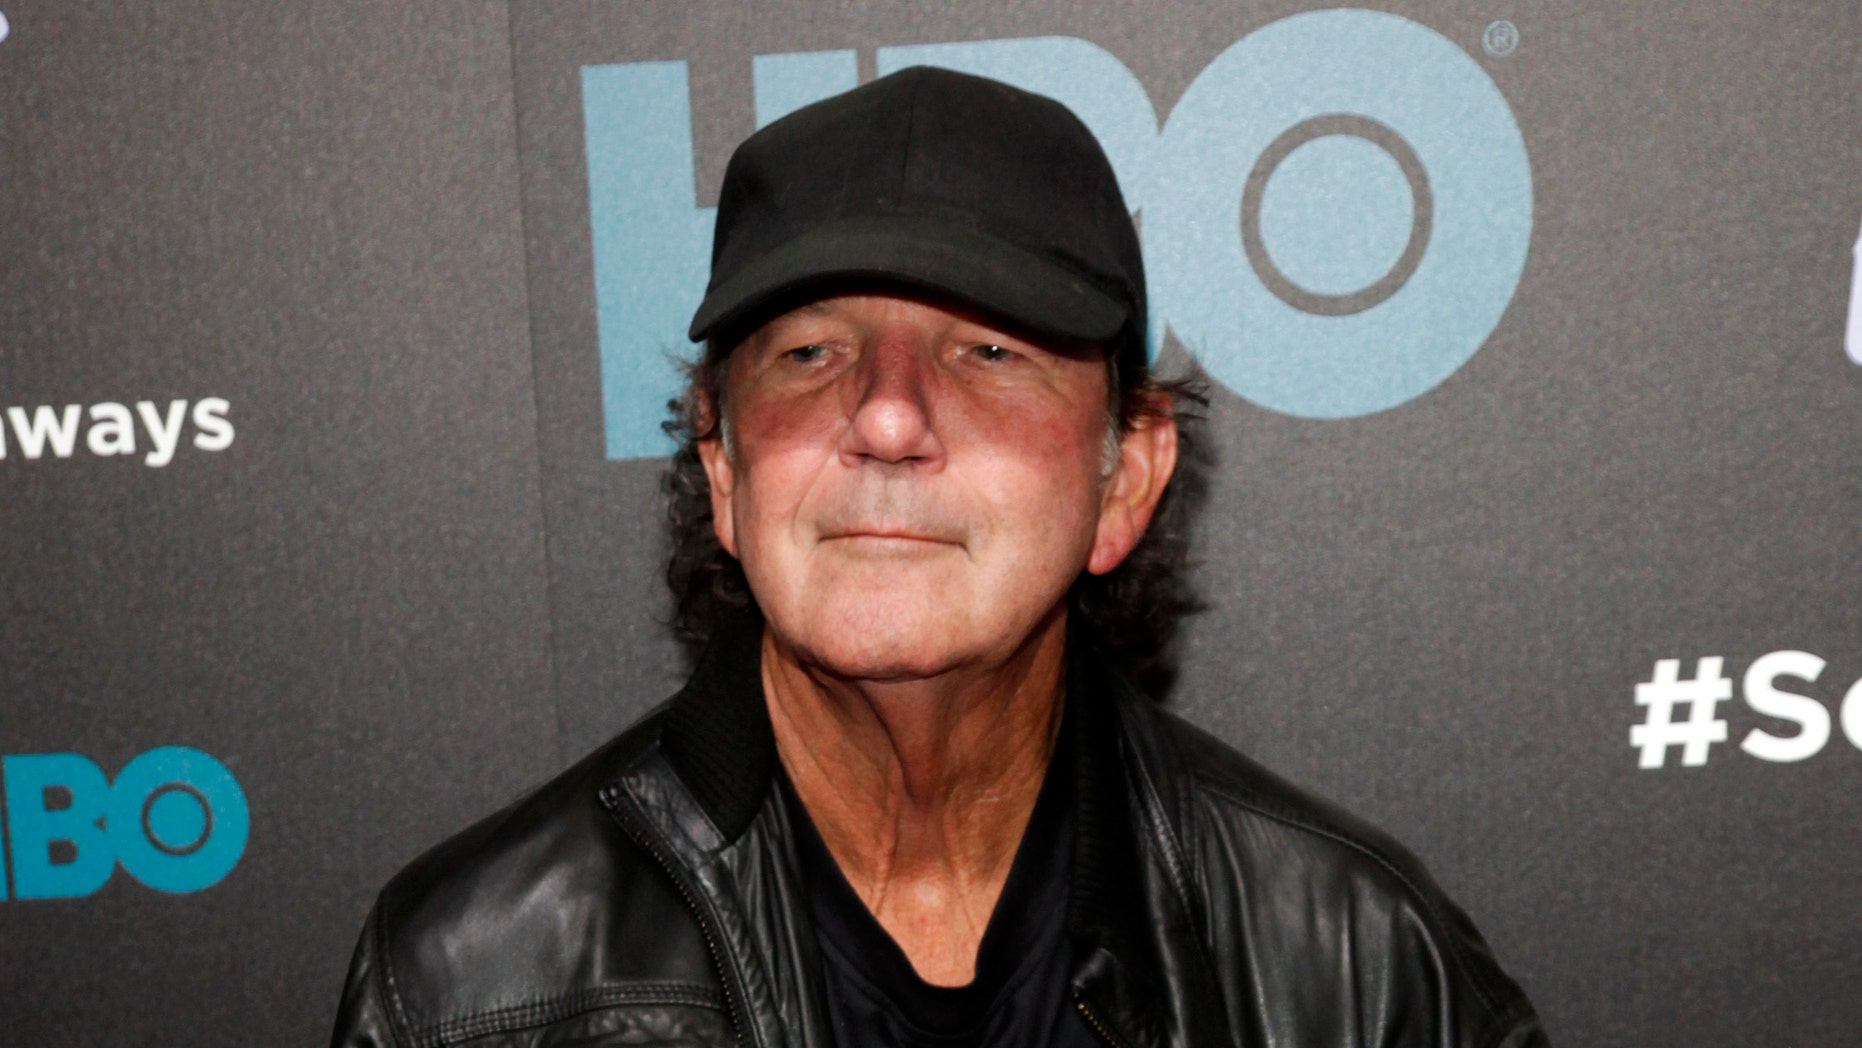 """FILE - In this Oct. 14, 2014 file photo, Tony Joe White attends the premiere of HBO's """"Foo Fighters Sonic Highway"""" in New York. White, who had a hit in 1969 with """"Polk Salad Annie"""" and whose songs were covered by music greats like Elvis Presley, Hank Williams Jr., Tina Turner, Ray Charles and Waylon Jennings, died Wednesday, Oct. 24, 2018. He was 75."""